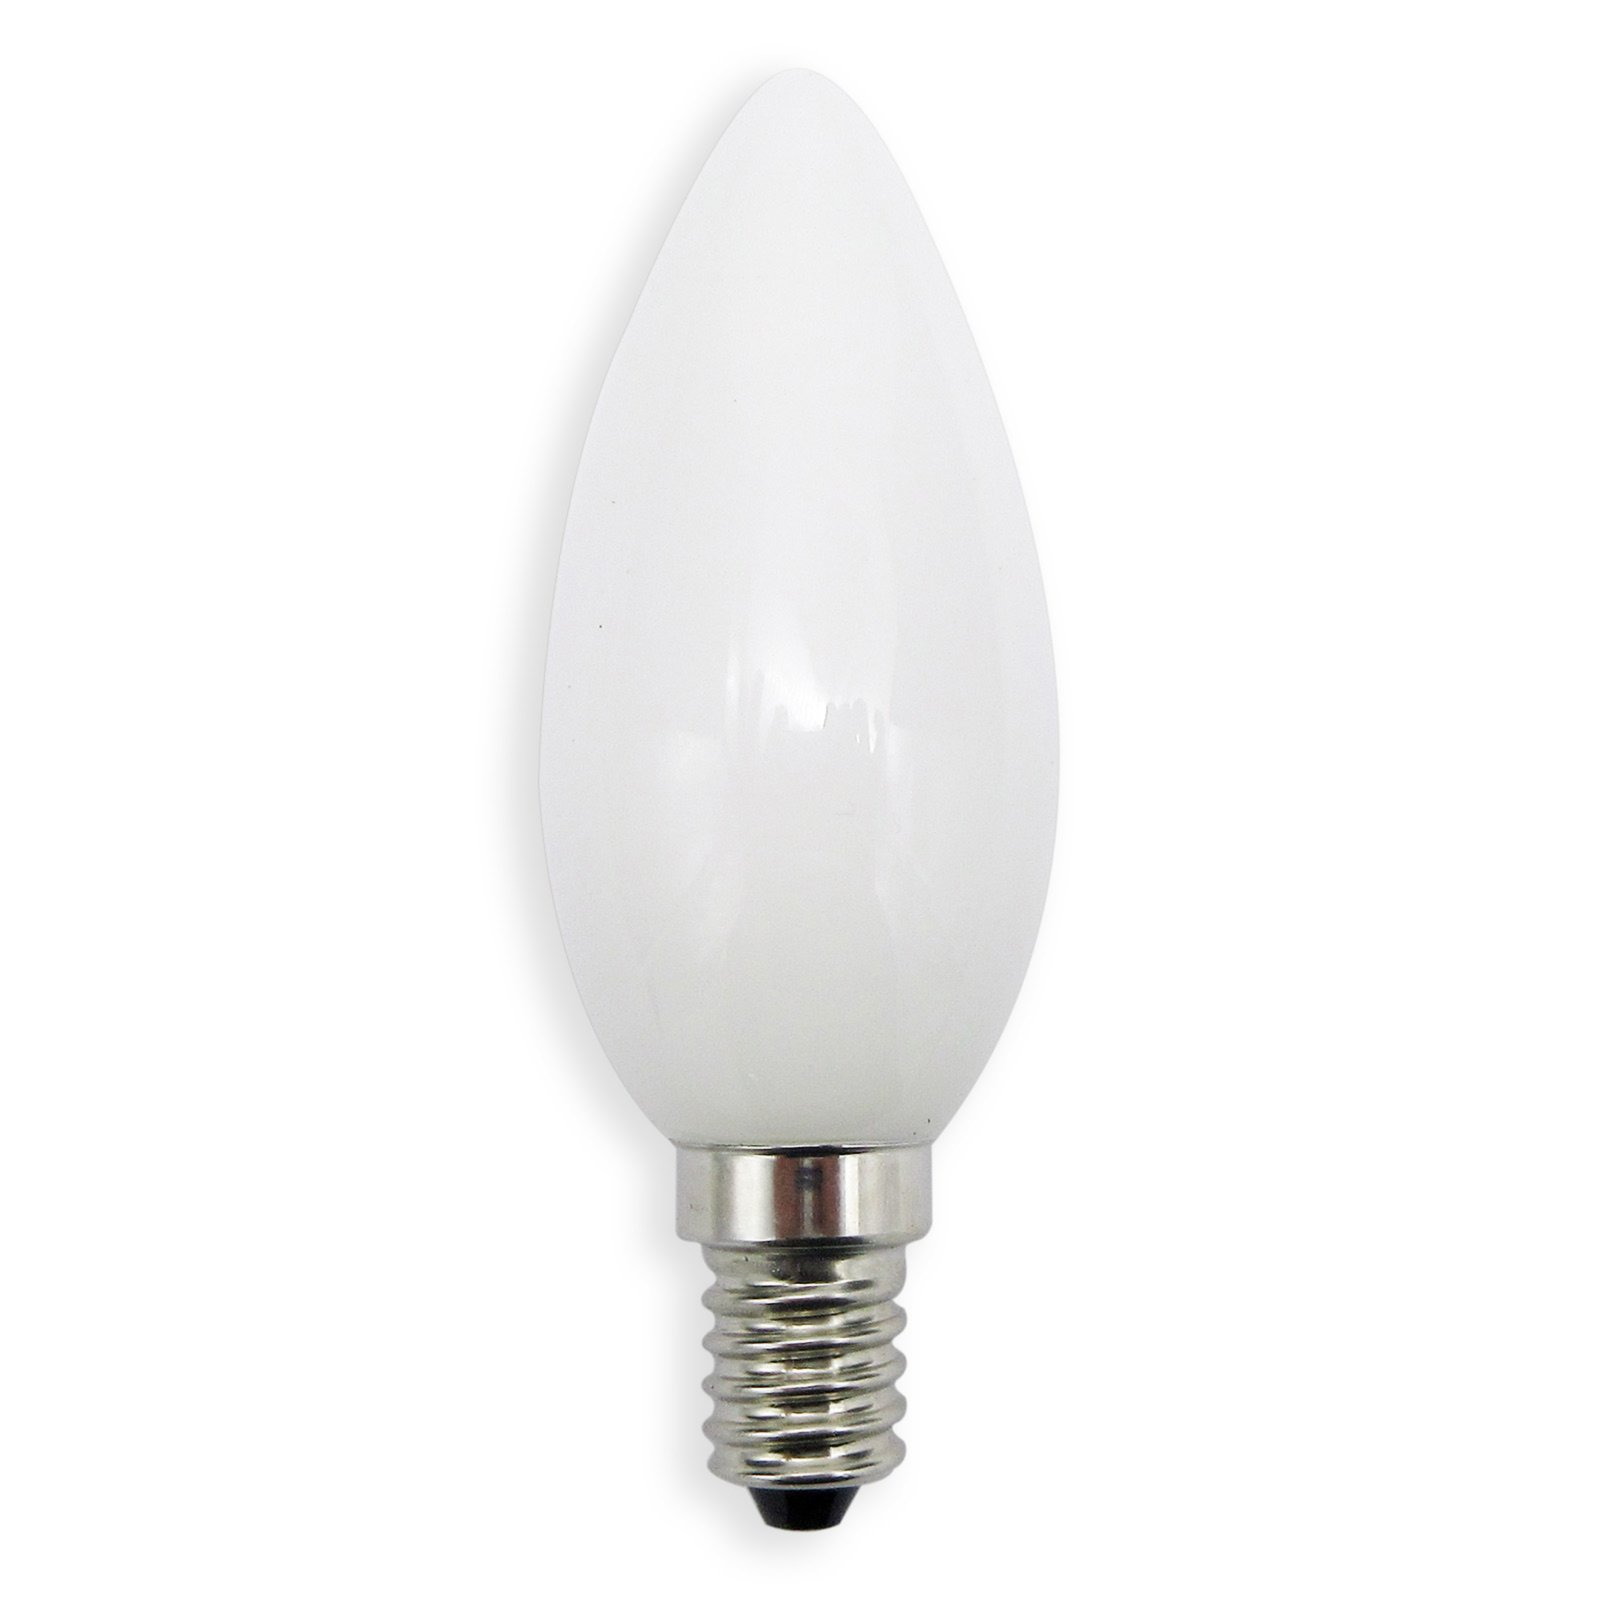 LED-Kerzenlampe Nostalgia LIGHTME - E14 - 1,8 W - warmweiß